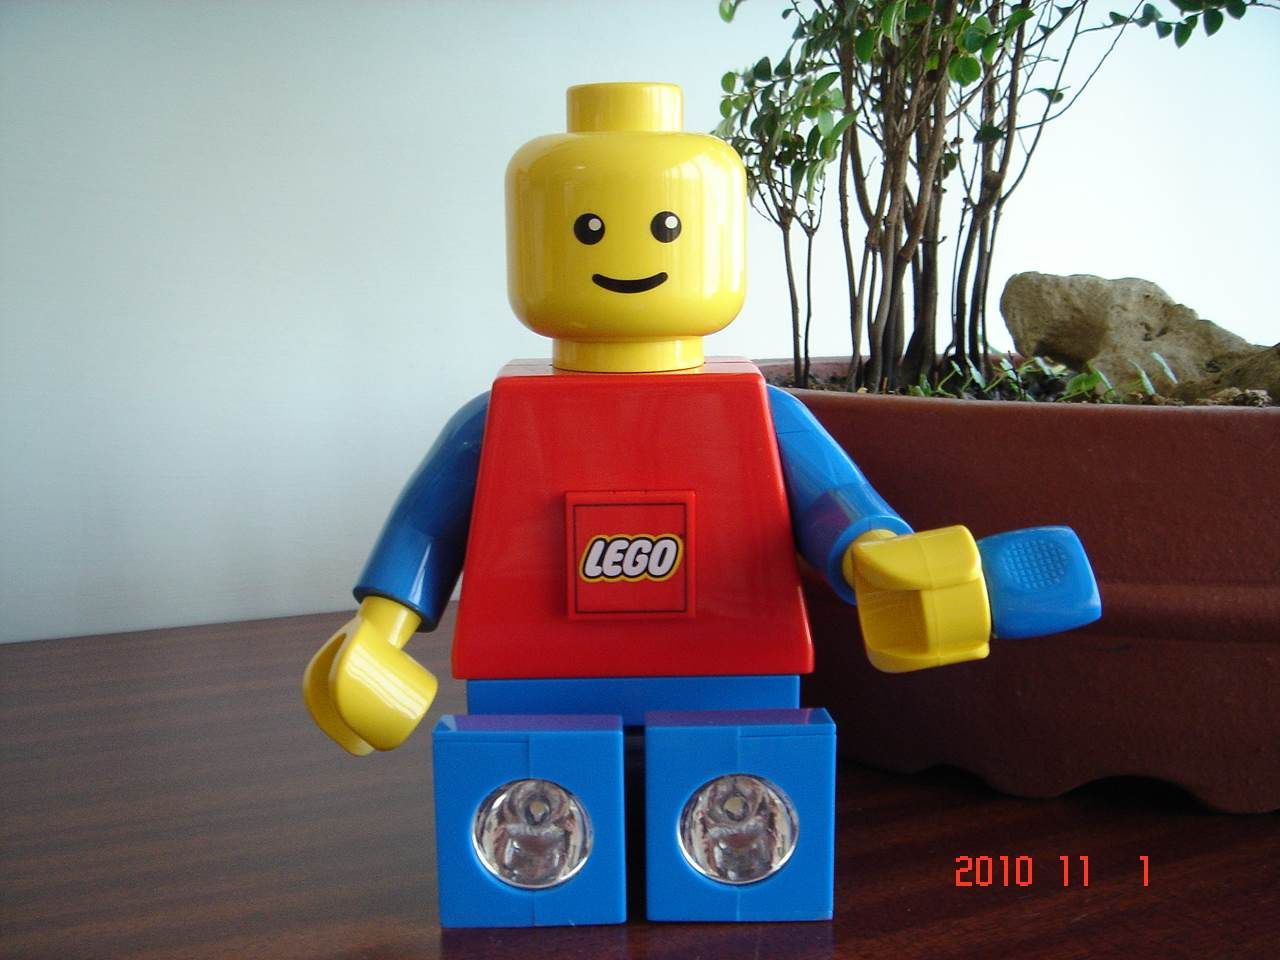 lego_light-5.jpg